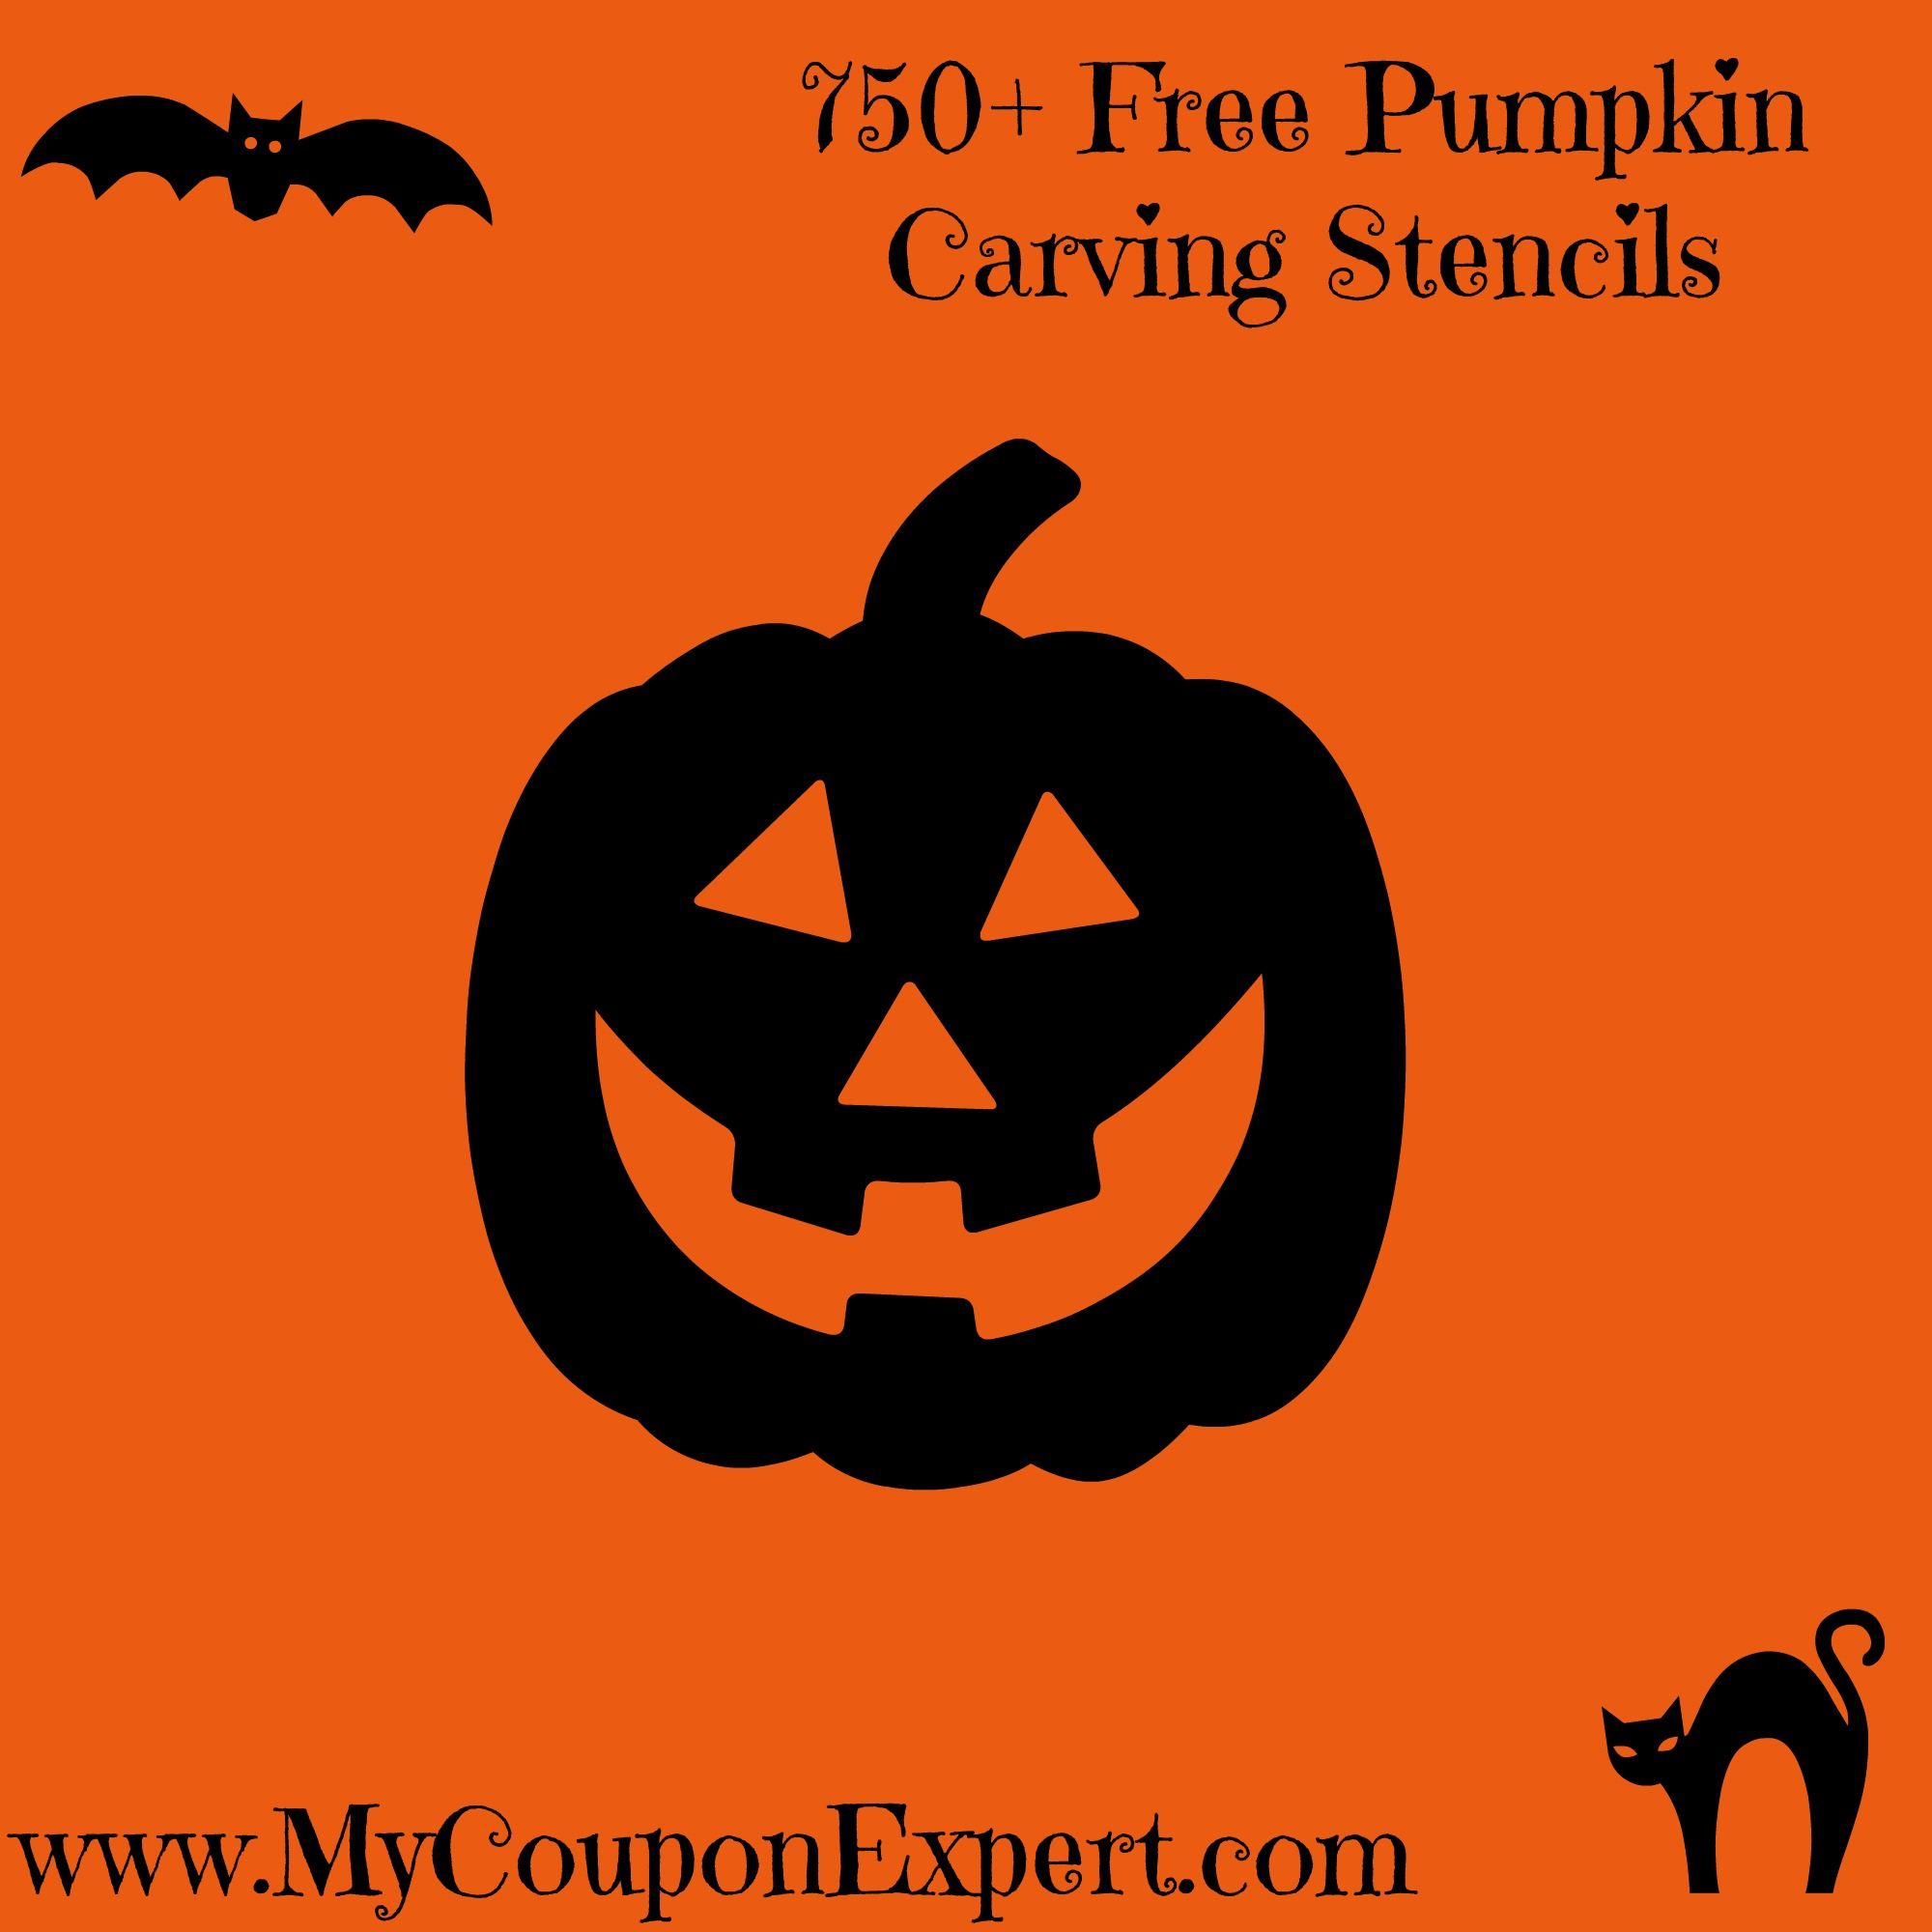 750+ Free Pumpkin Carving Stencils · - Free Pumpkin Carving Templates Printable